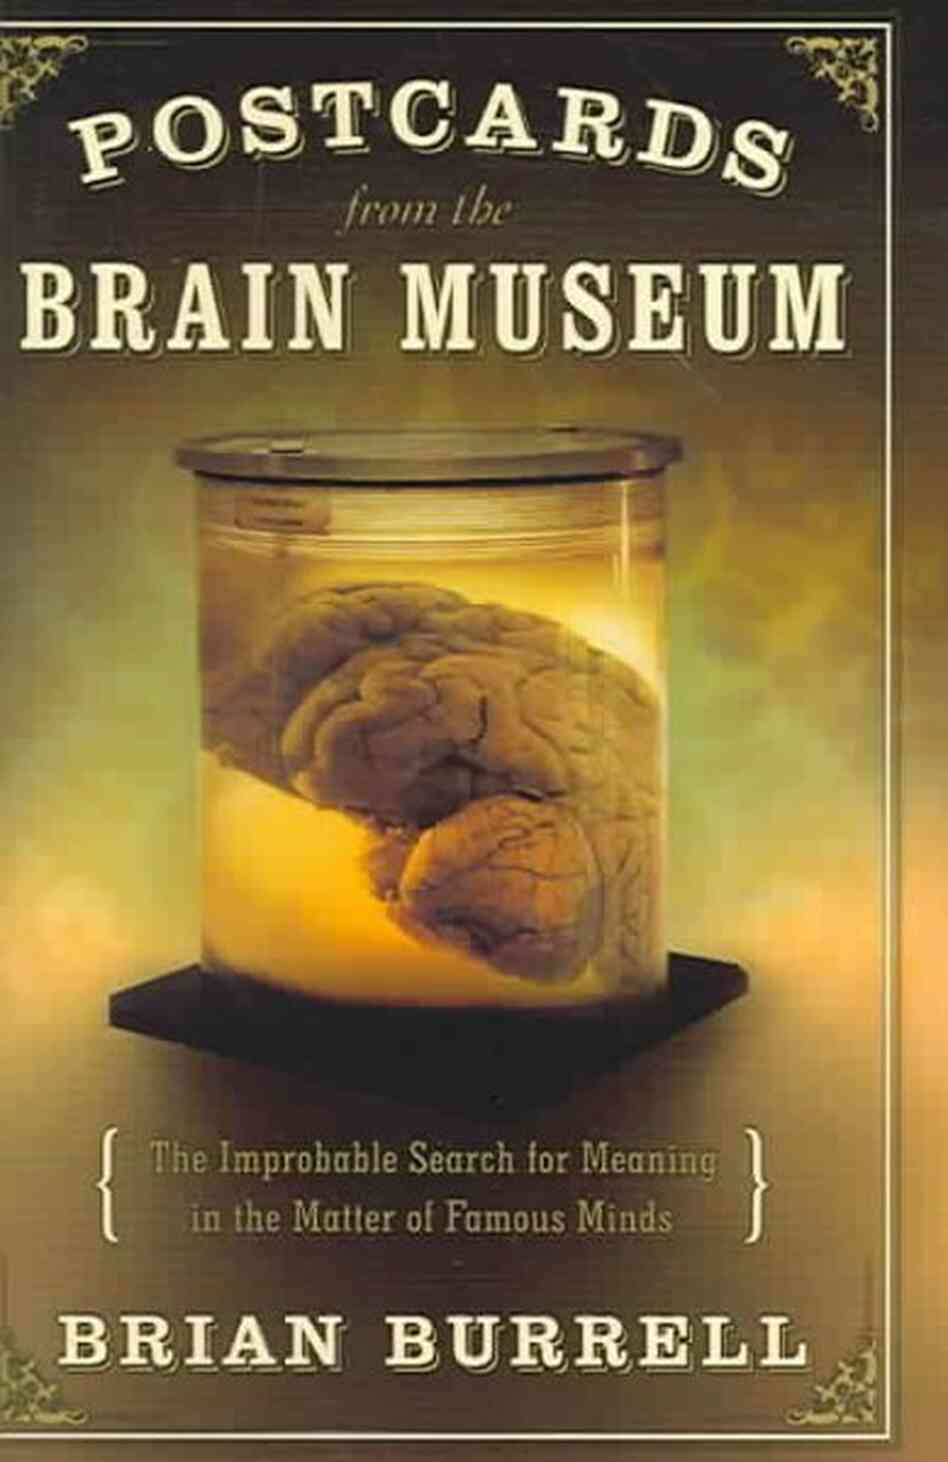 Postcards from the Brain Museum